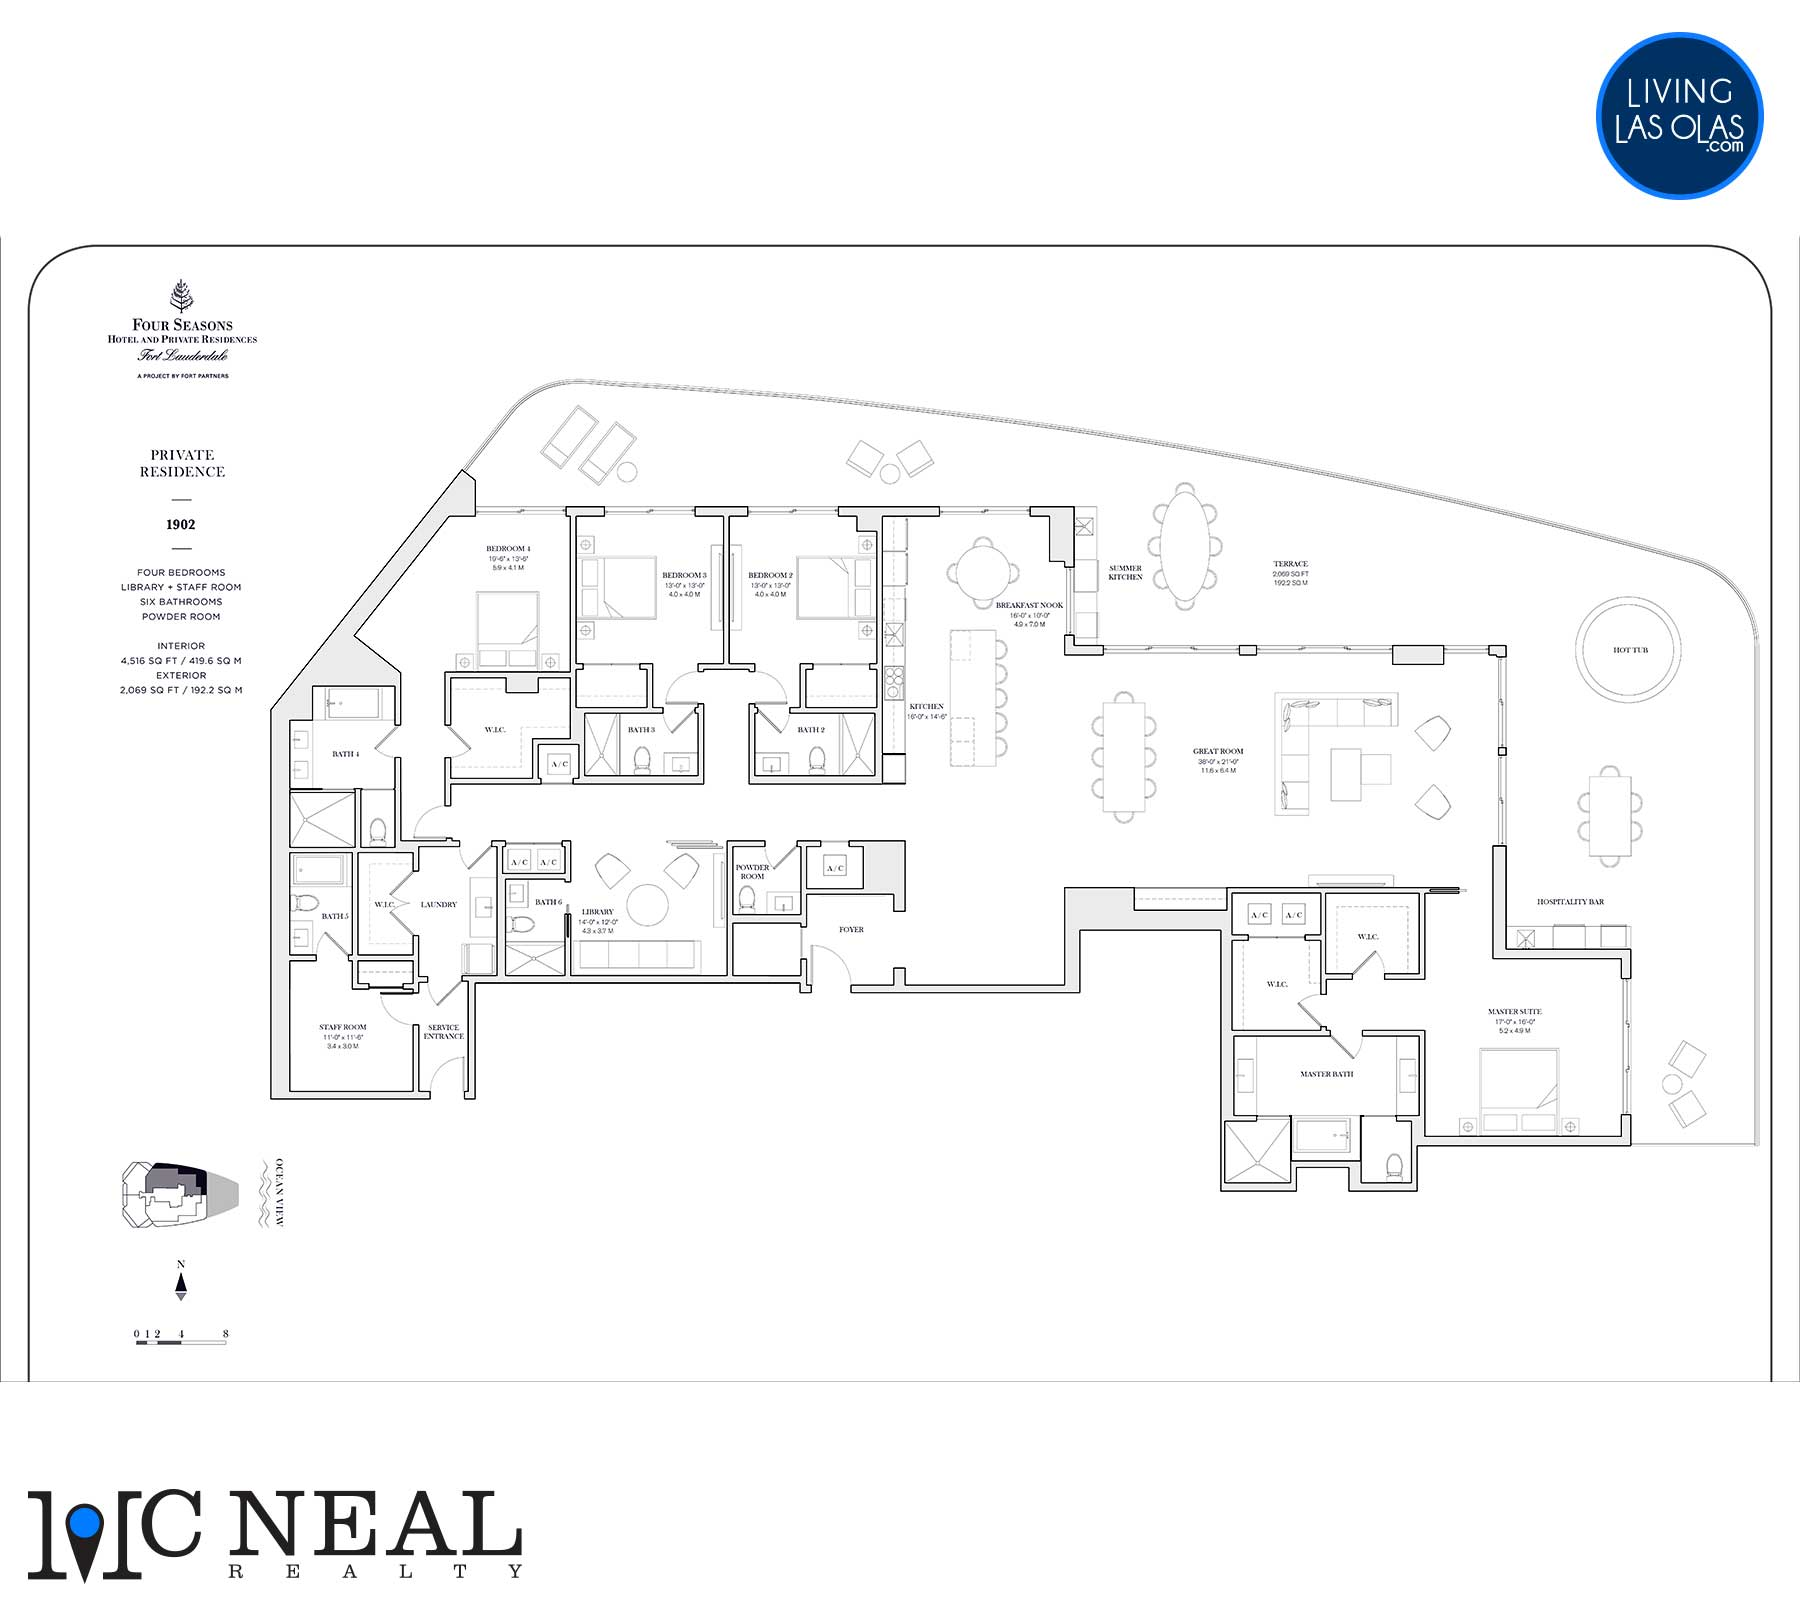 Four Seasons Private Residences Floor Plan 1902